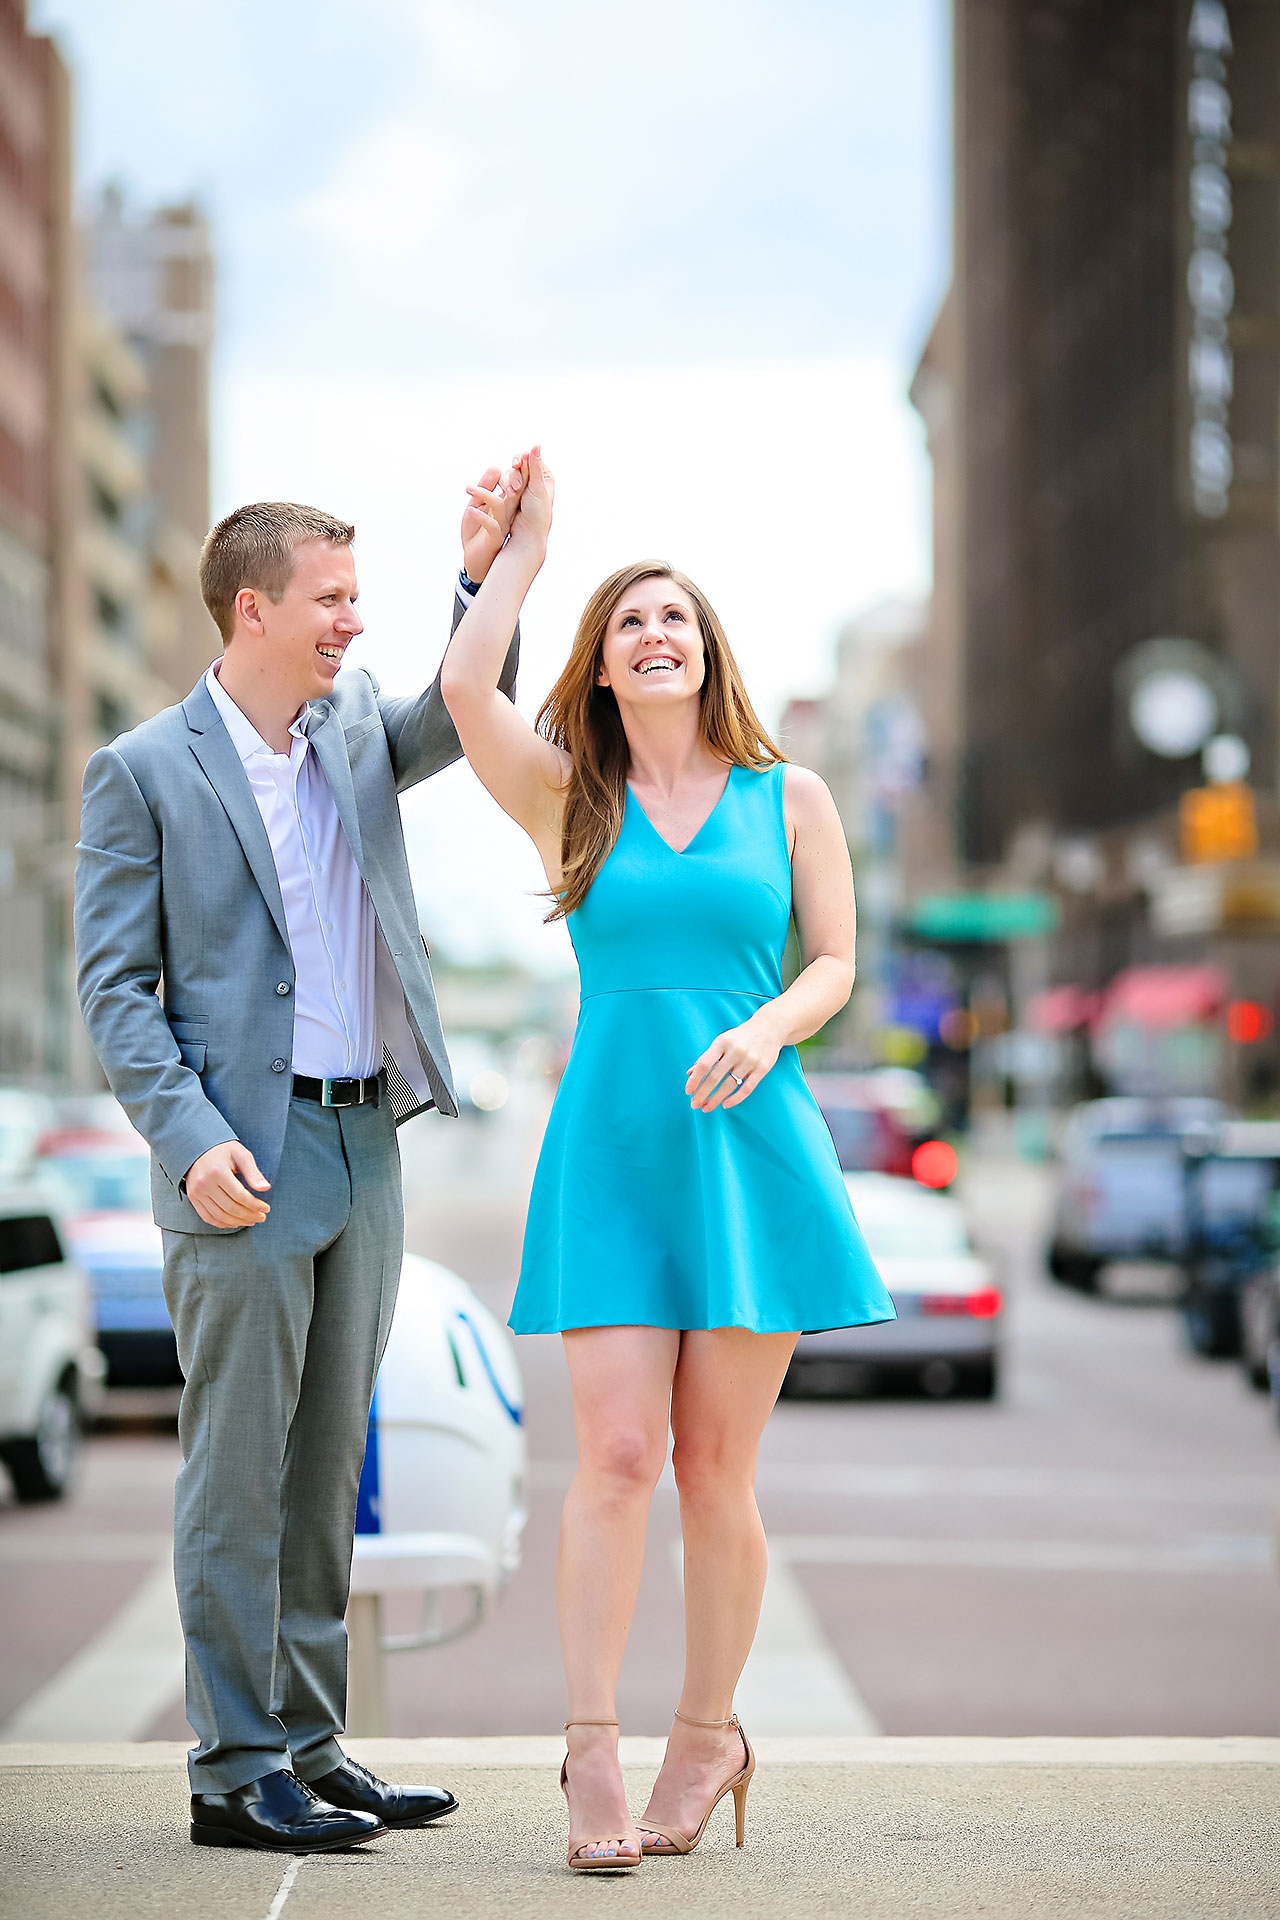 Chelsea Jeff Downtown Indy Engagement Session 053